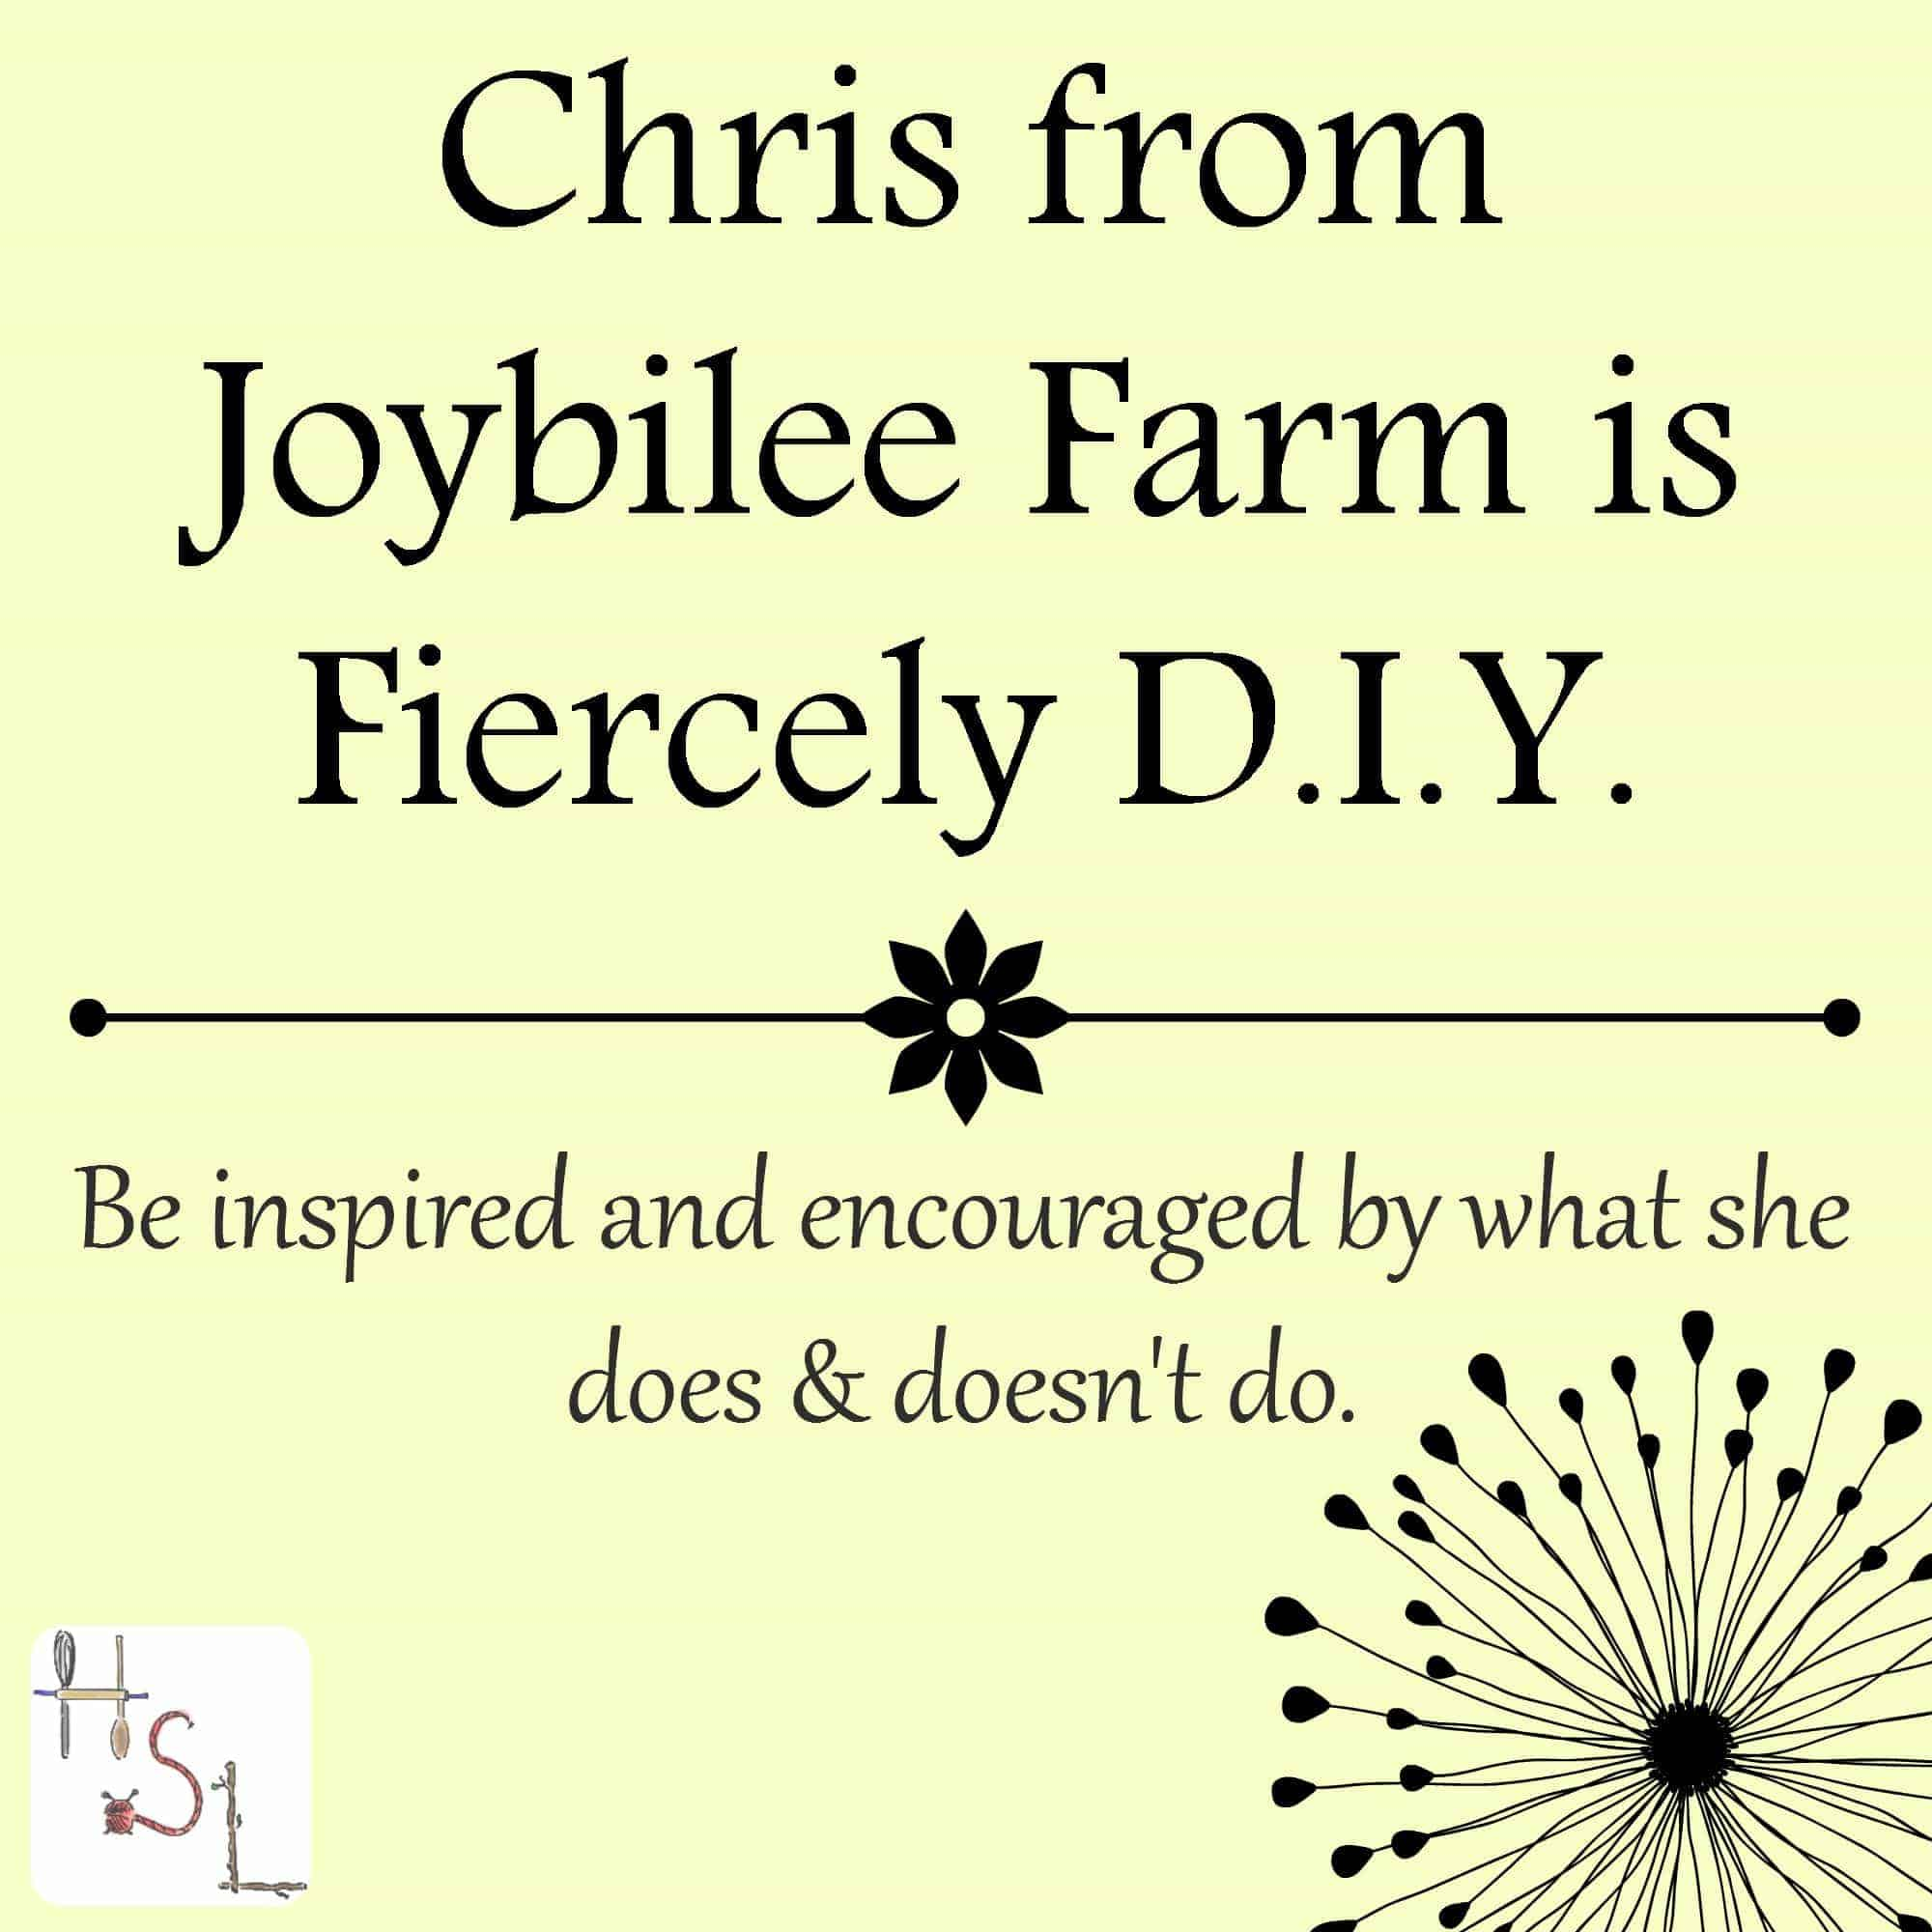 Chris from Joybilee Farm is Fiercely DIY and she will inspire and encourage you in what she does and doesn't do.